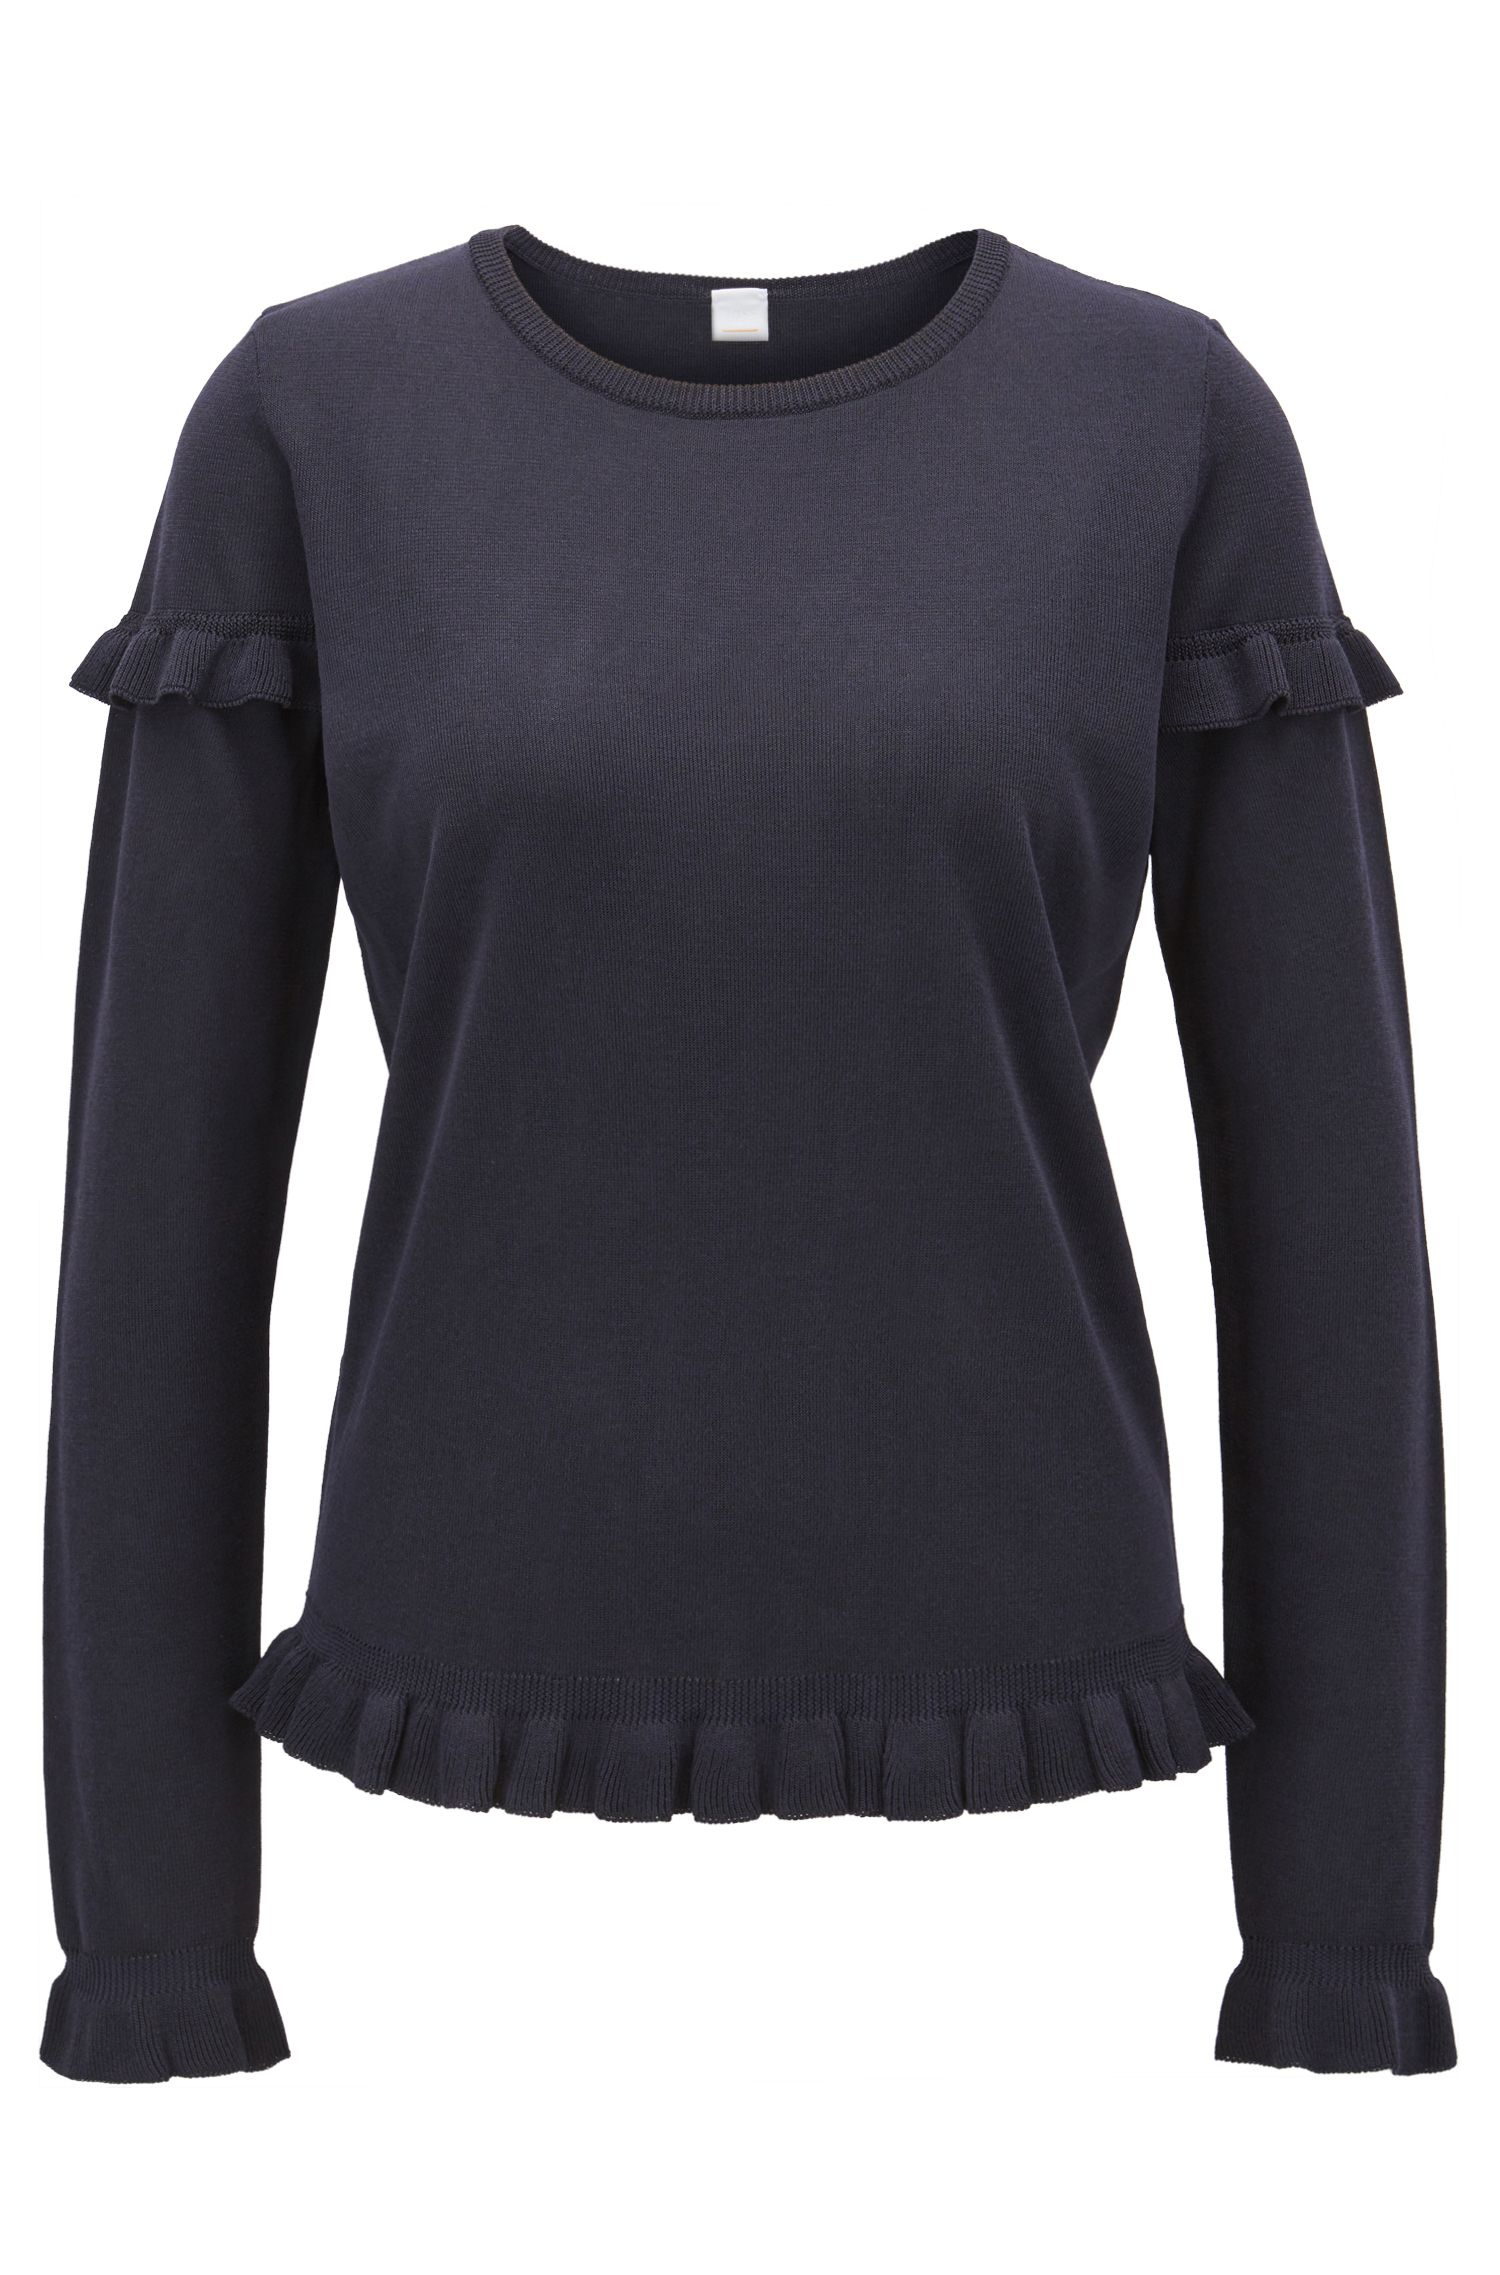 Cropped knitted sweater with ruffle detail, Dark Blue